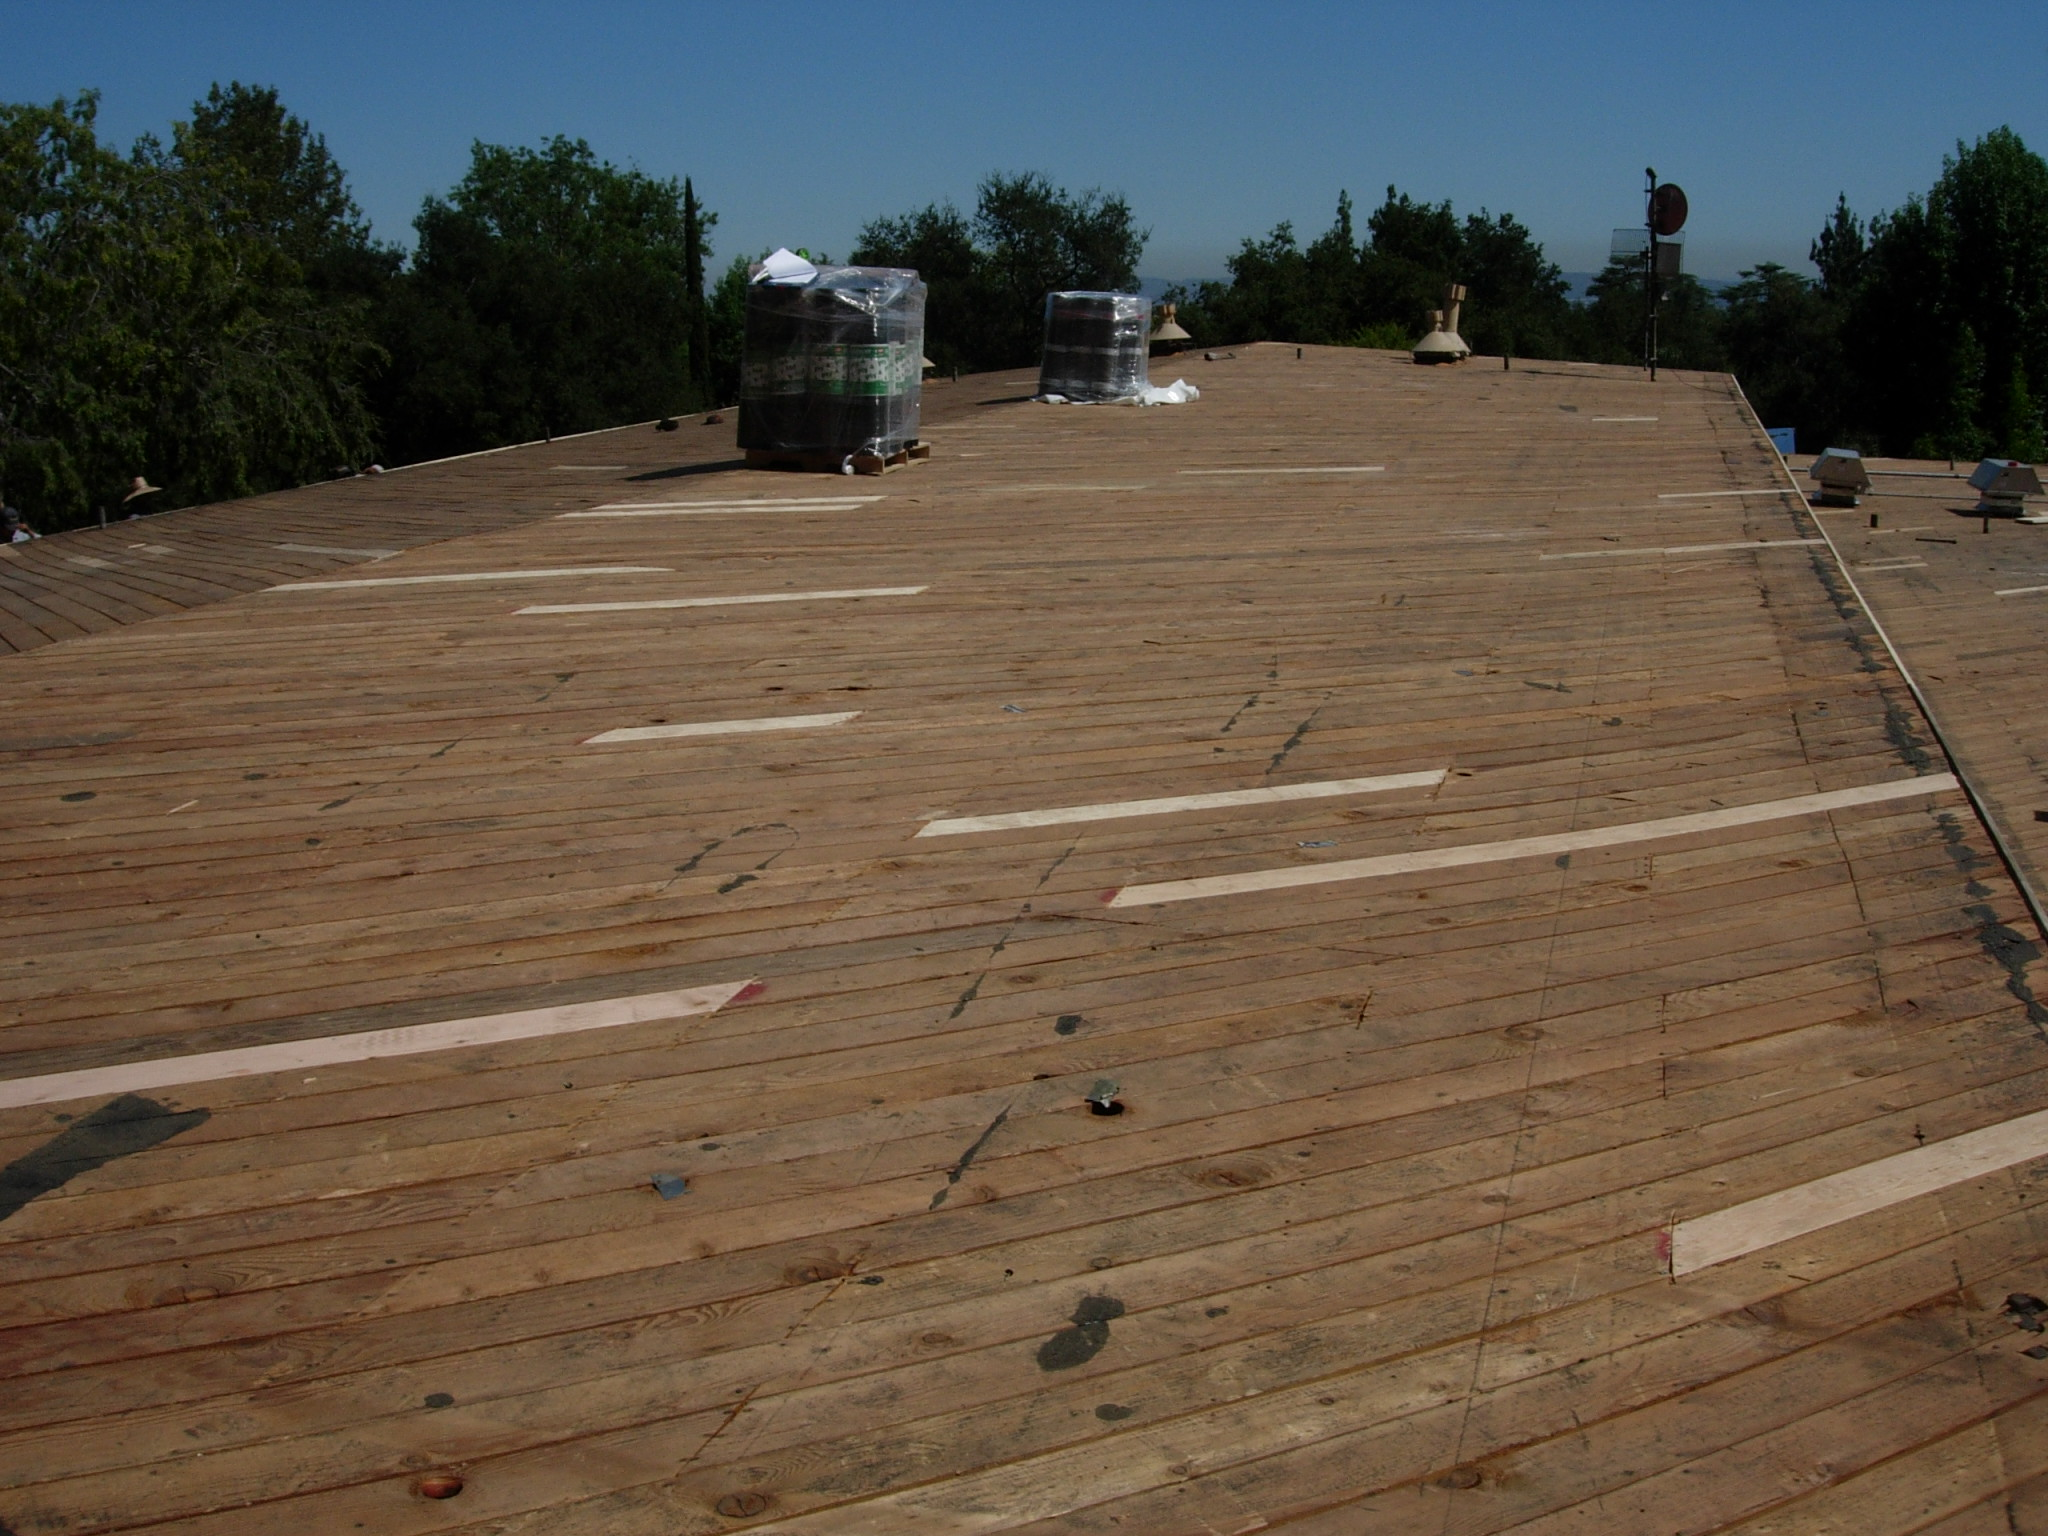 Commercial and Industrial Roof Maintenance and Repair | Commercial and Industrial Roof Maintenance and Repair in California | Commercial and Industrial Roof Maintenance and Repair in Nevada | Commercial and Industrial Roof Maintenance and Repair in Arizona